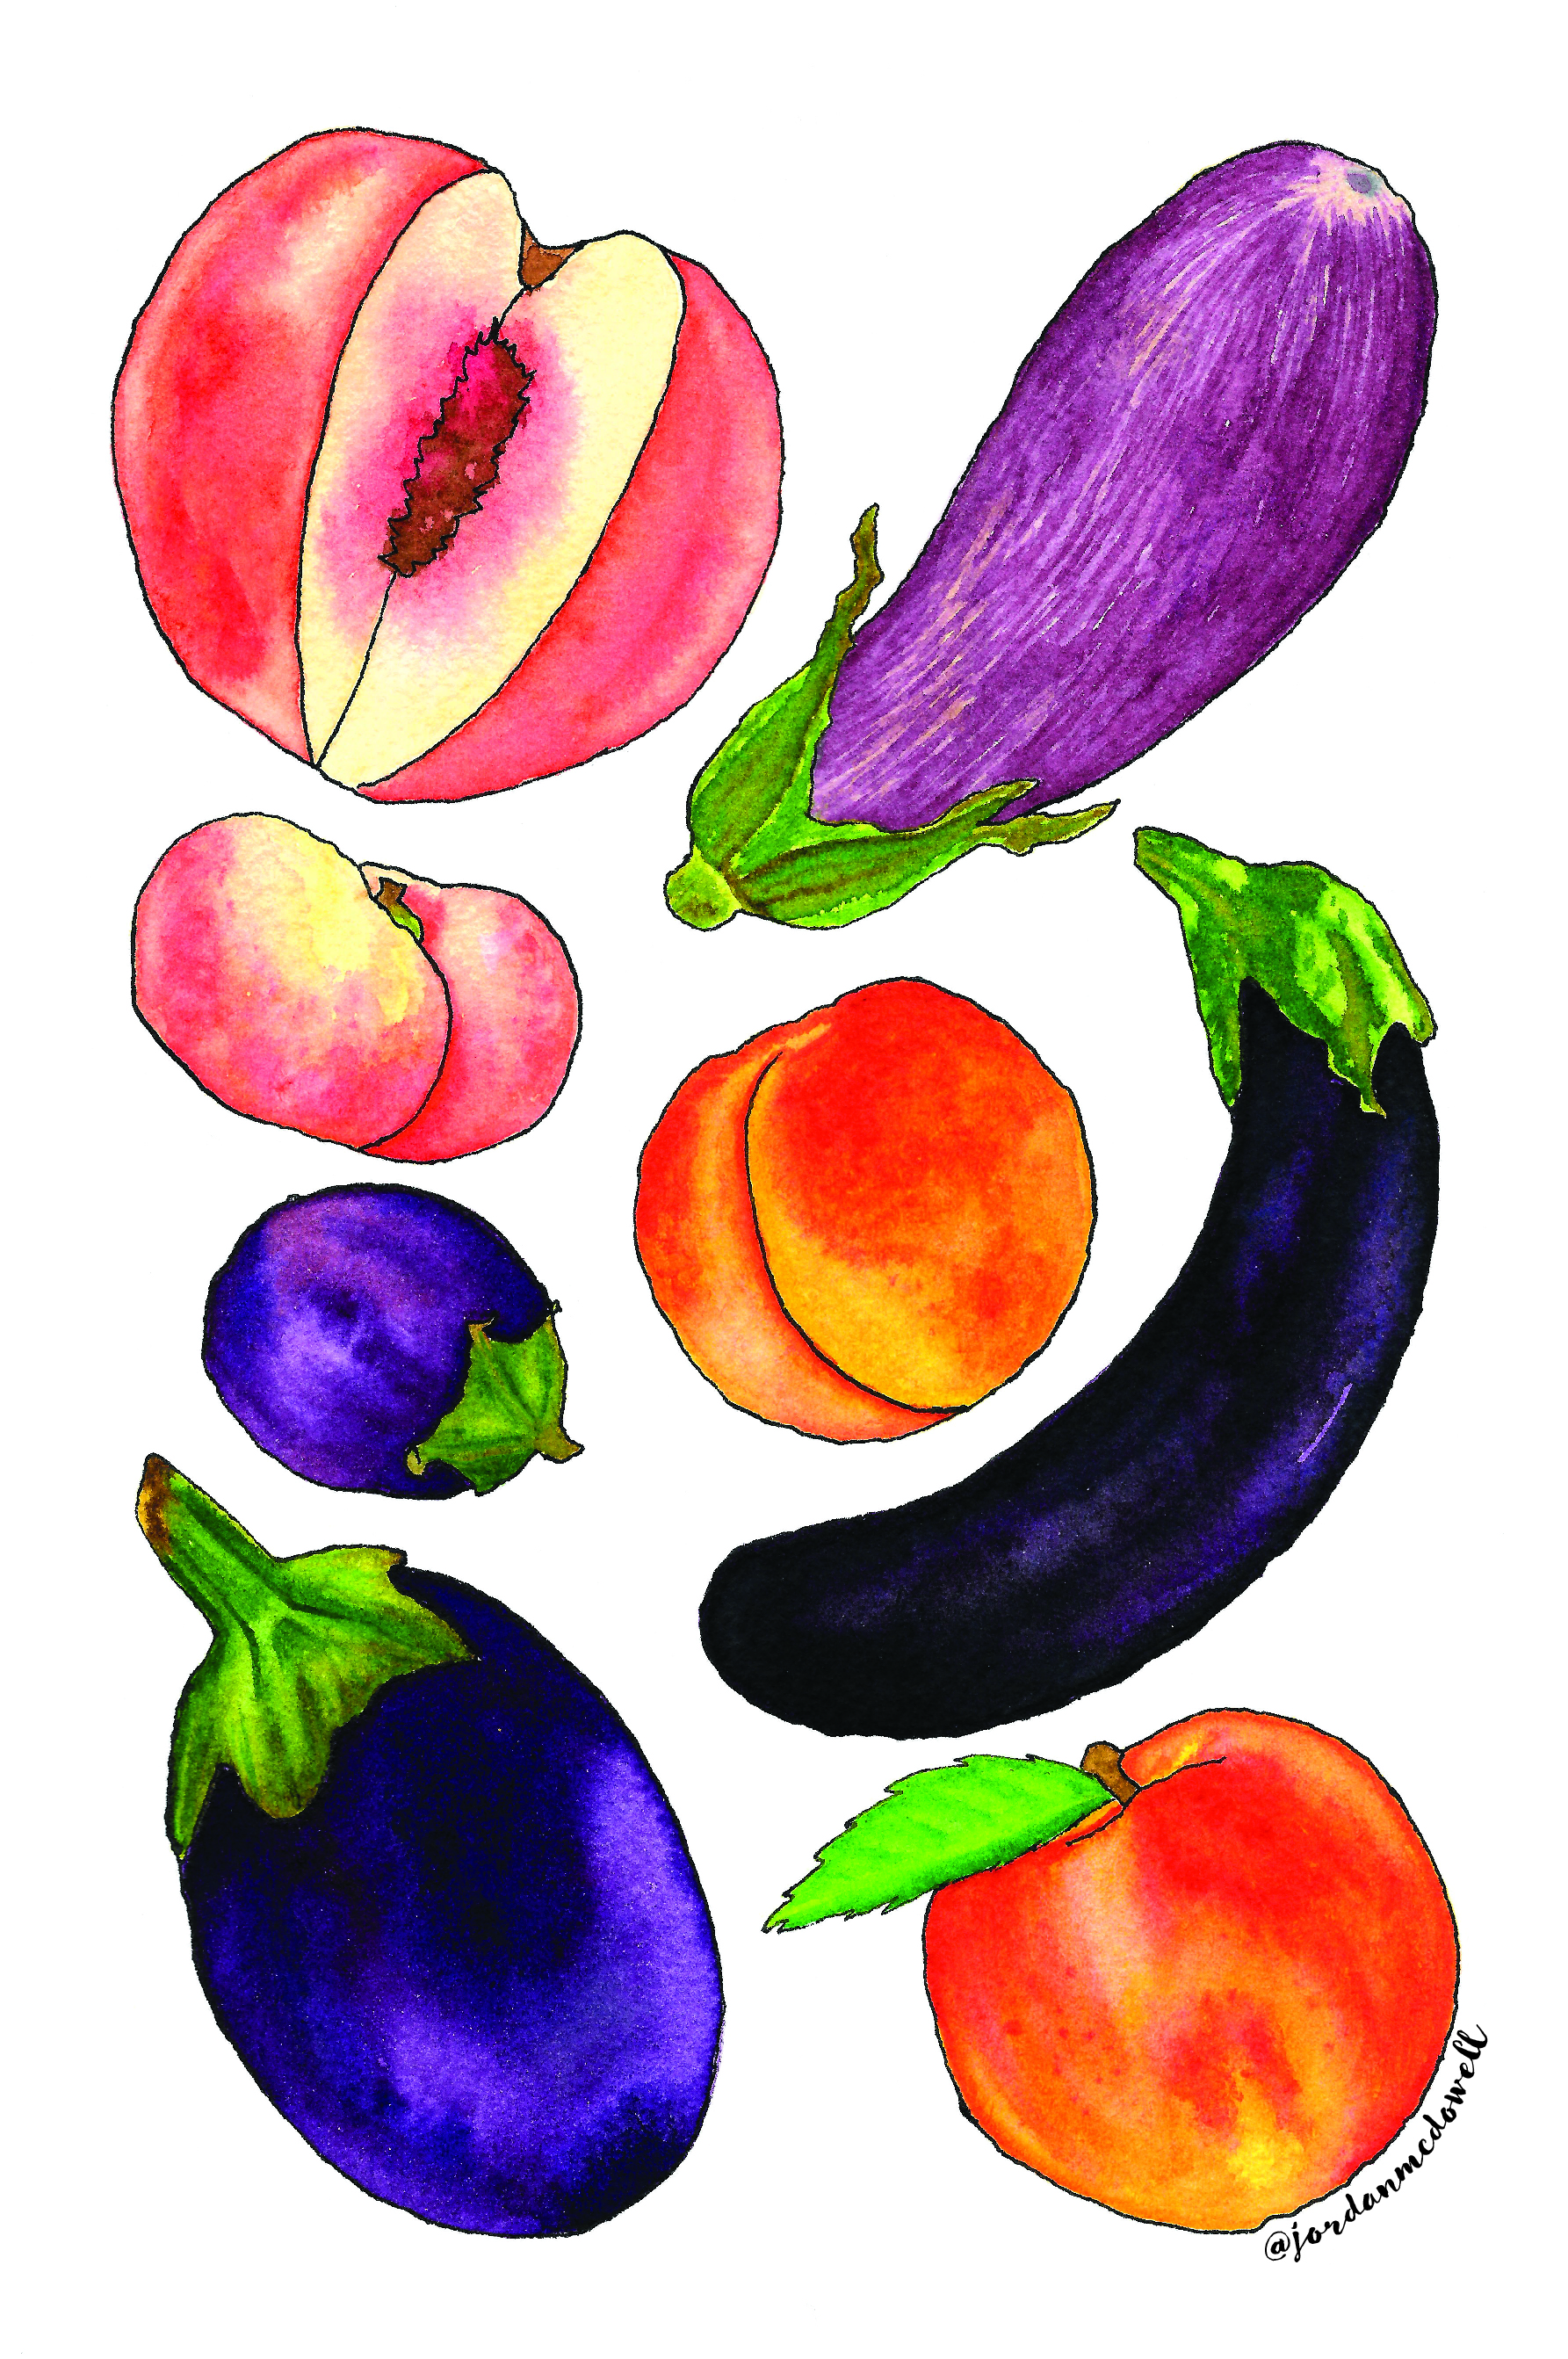 Peaches and Eggplant editorial watercolor illustration Jordan McDowell